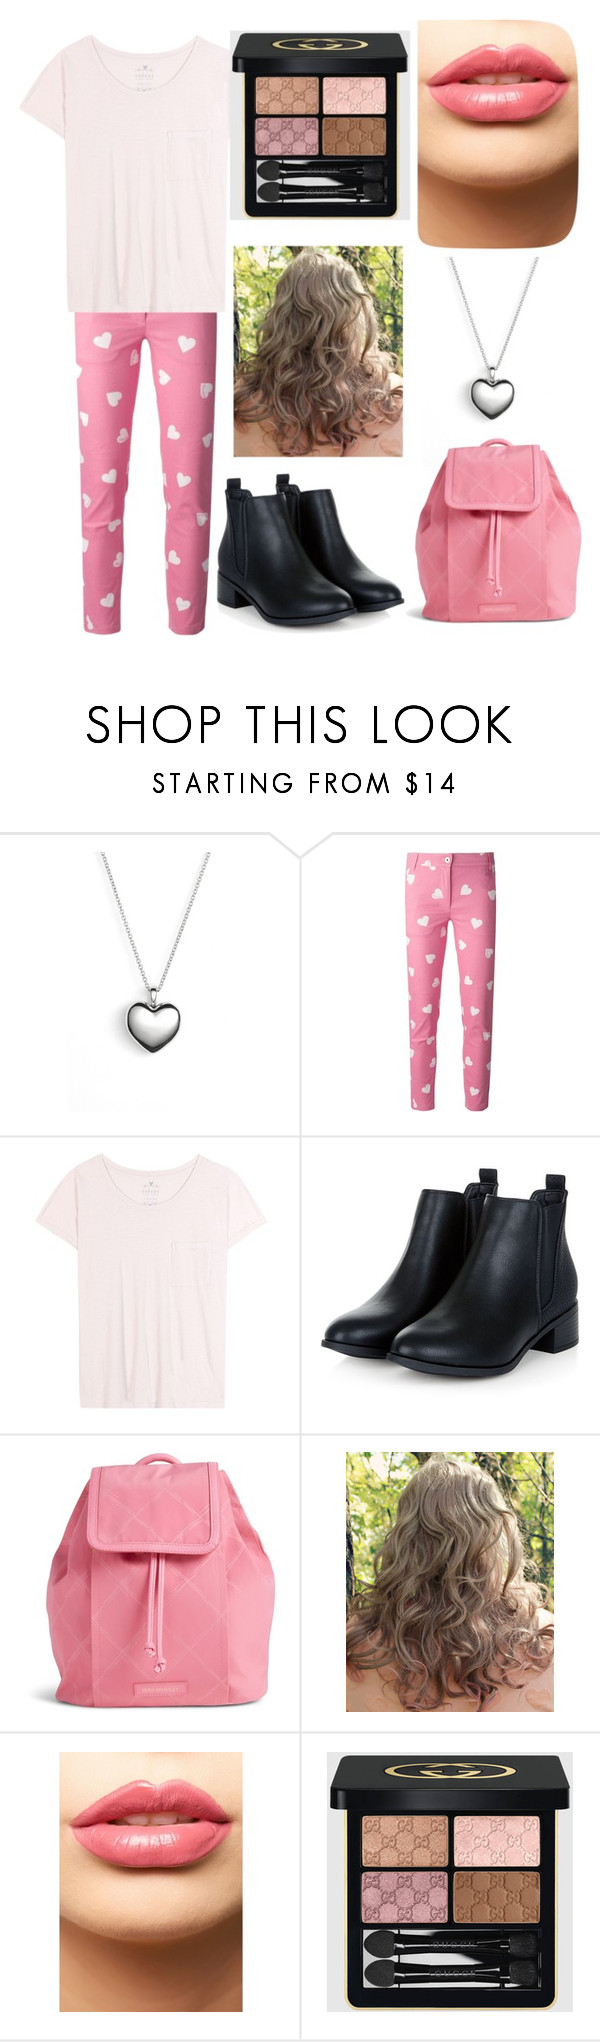 """OOTD February 14"" by chooseyourstyle321 on Polyvore featuring Pandora, Moschino, Velvet, Vera Bradley, LASplash, Gucci, women's clothing, women, female and woman"